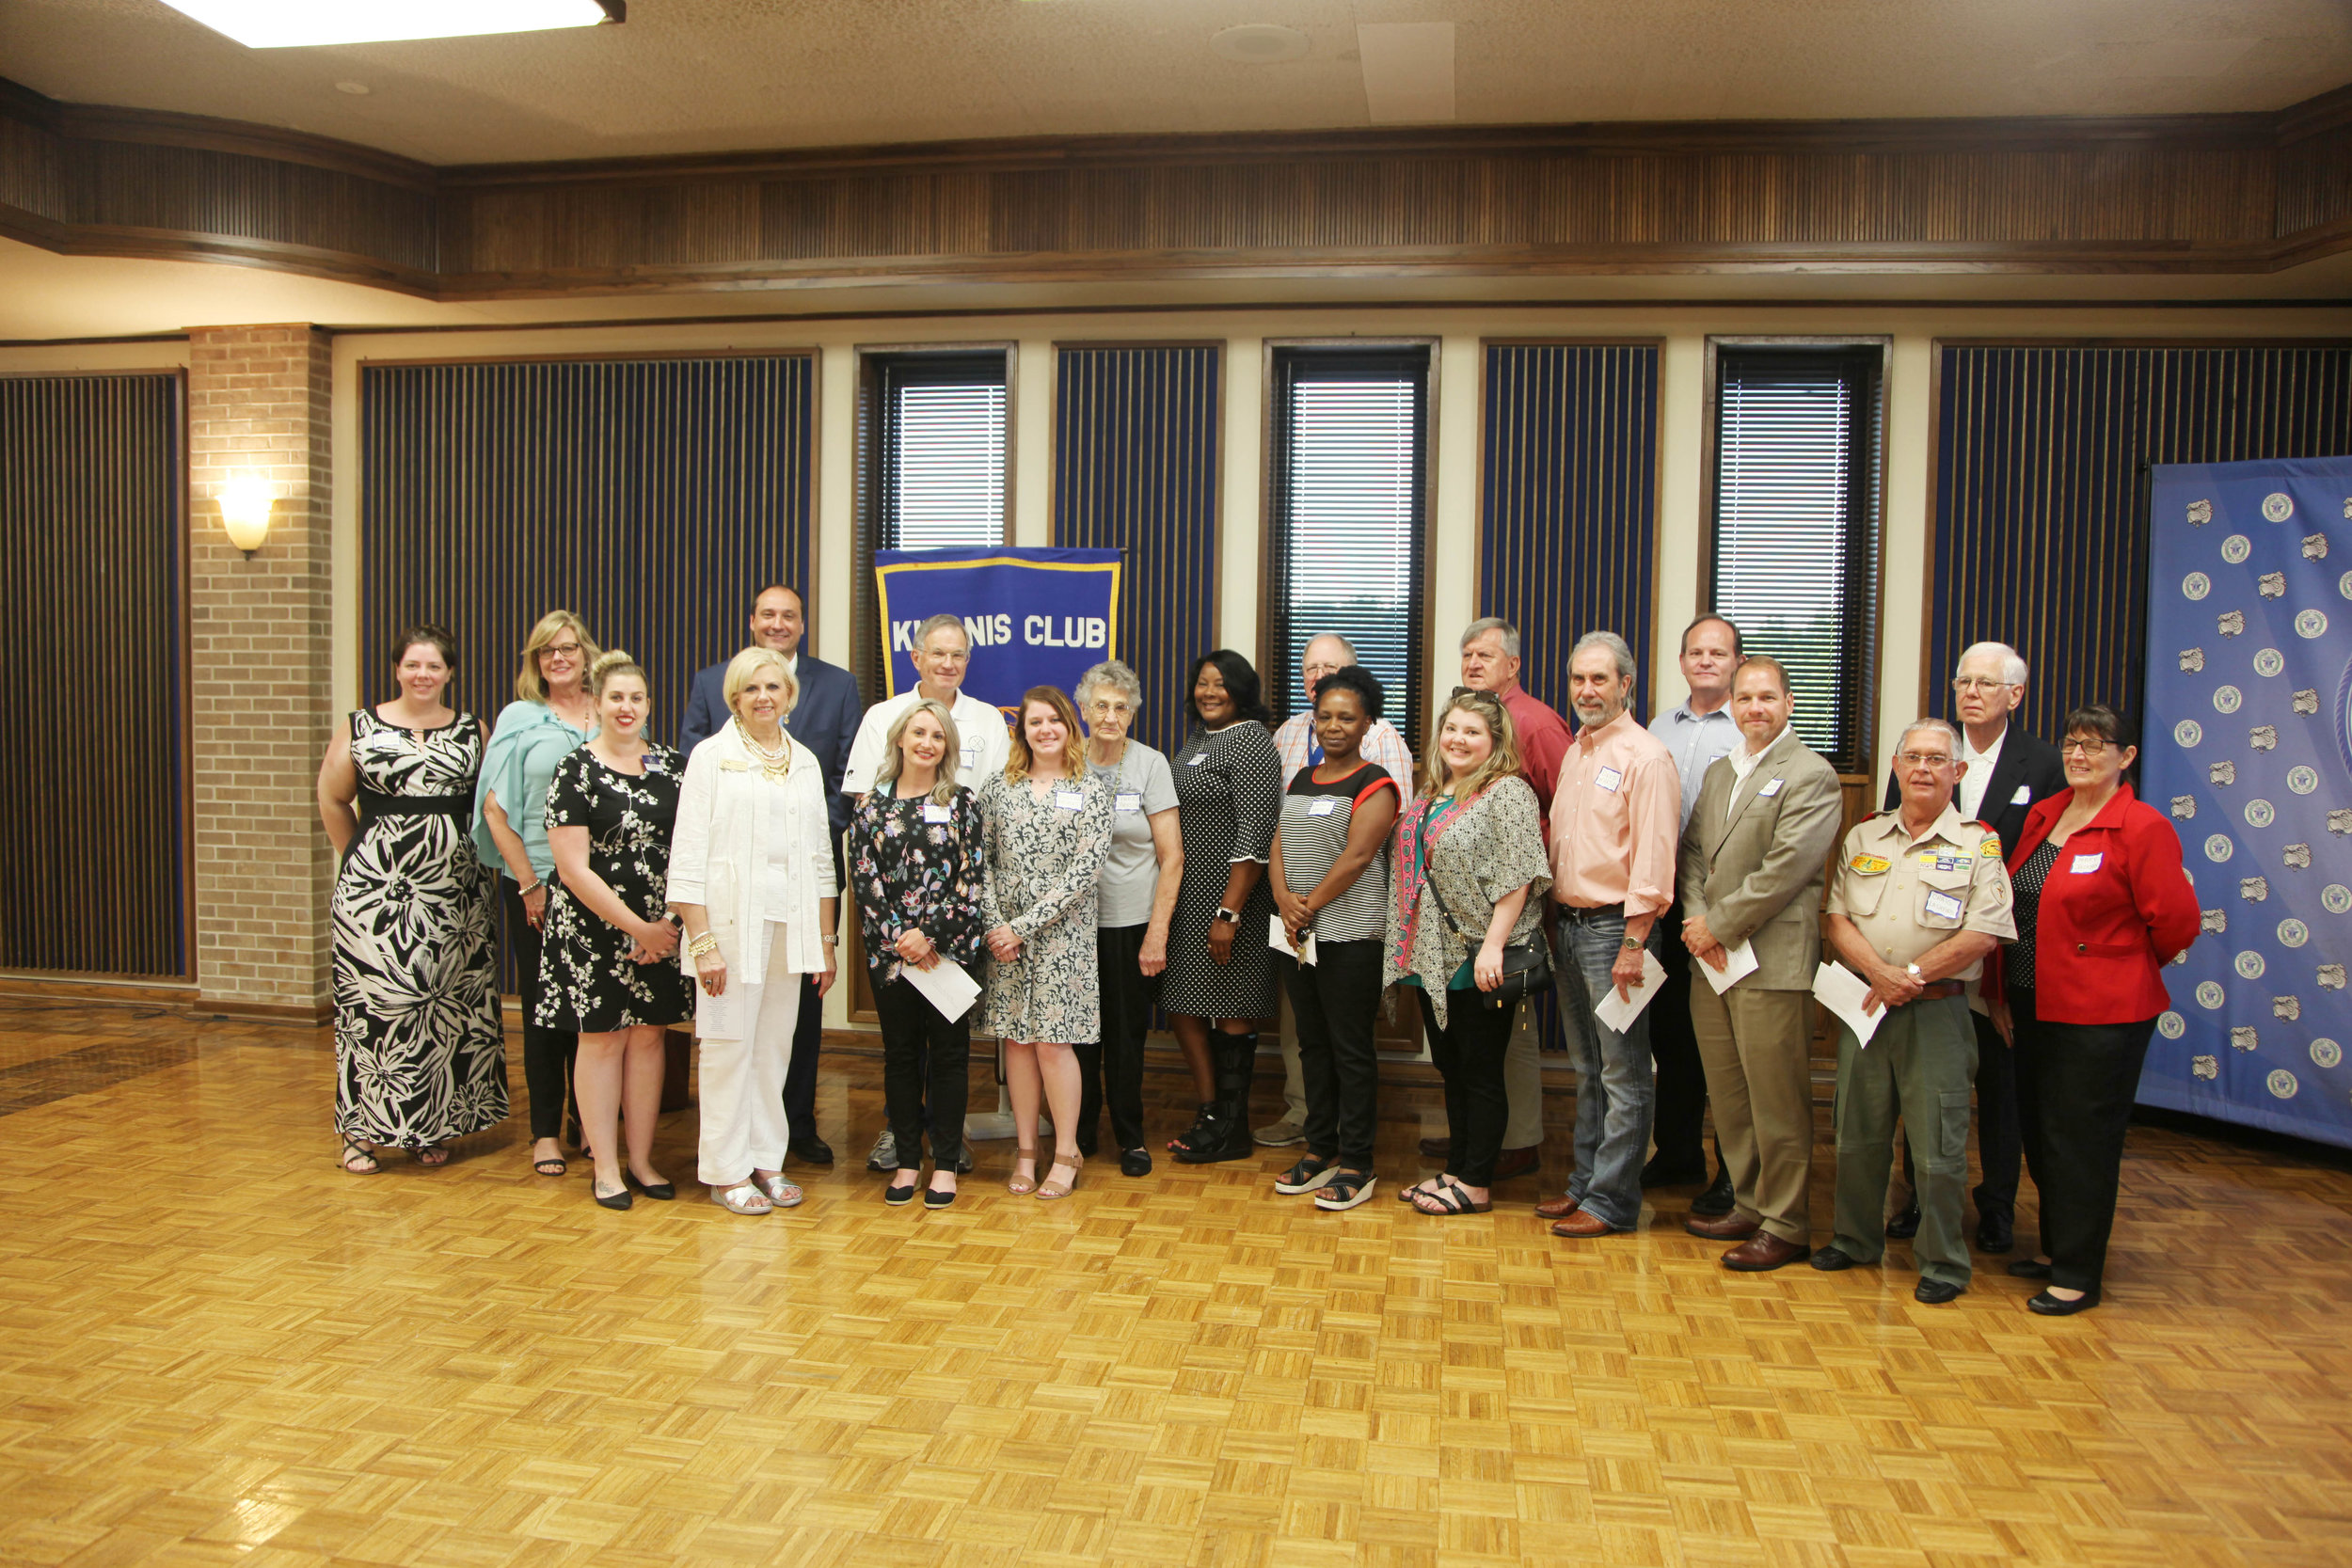 Kiwanis Club of Texarkana Awards Banquet